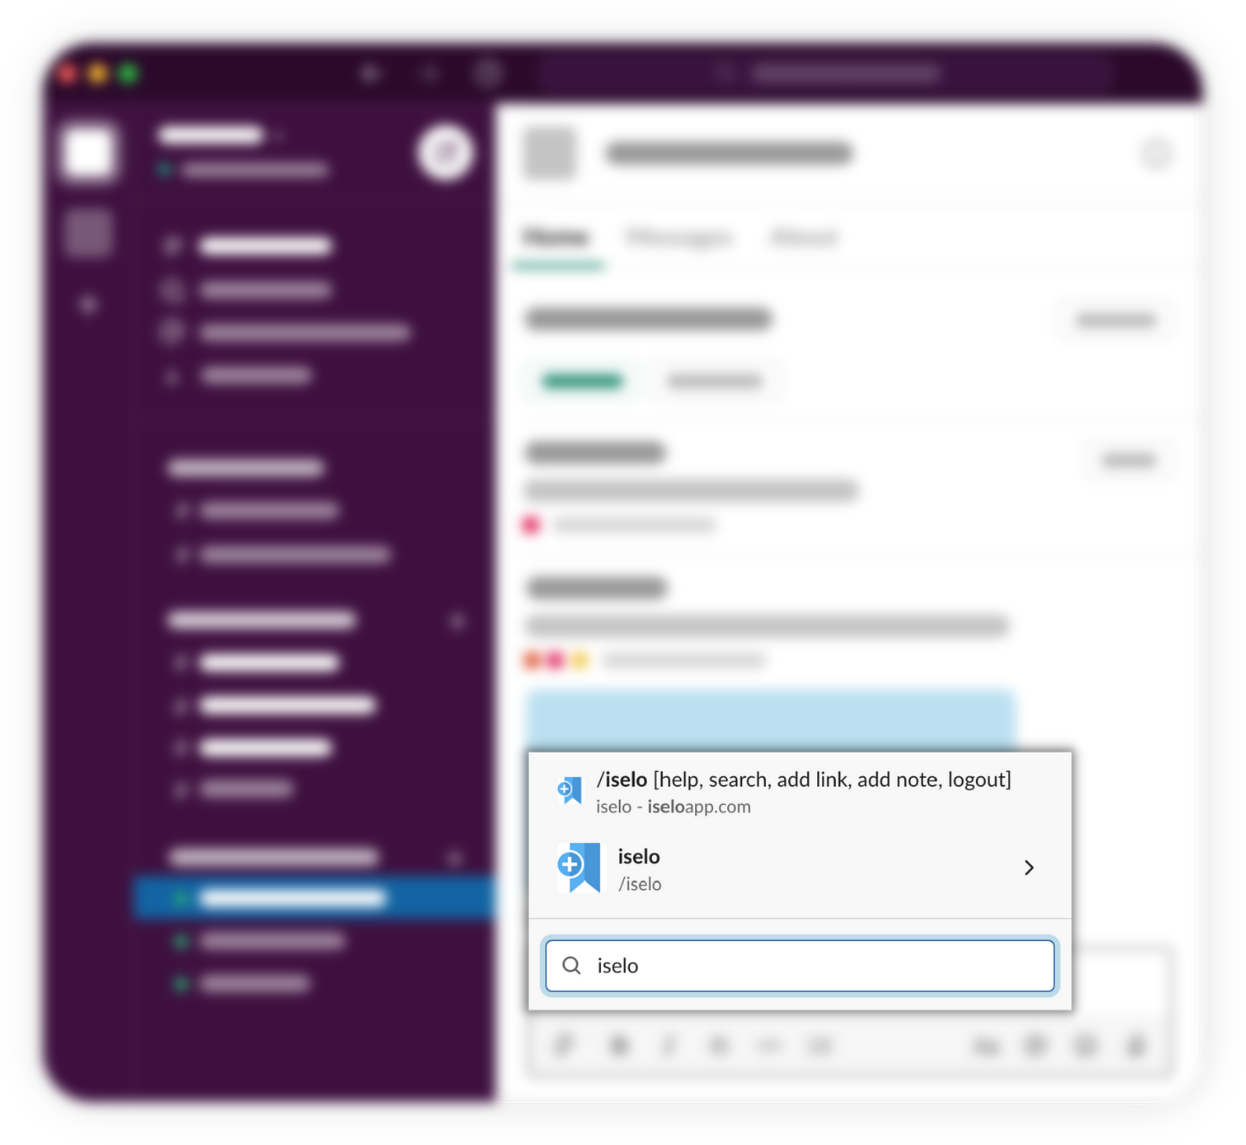 Access ISELO directly from Slack though /iselo command